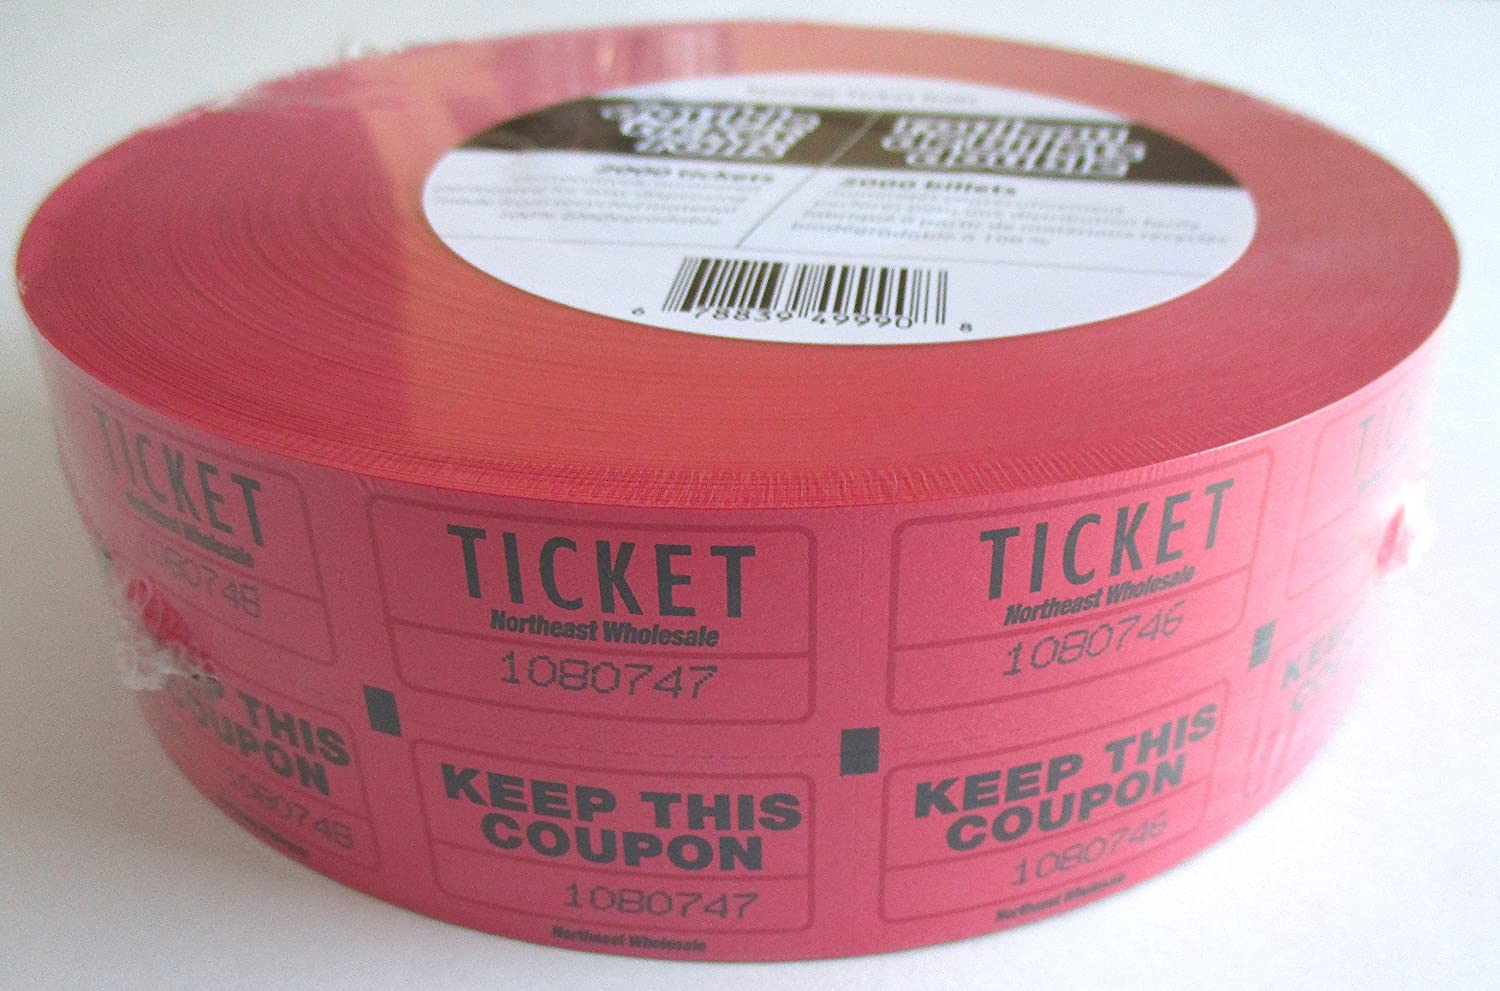 Admit One Tickets With Coupon 2000 Tickets Red Colour Canada Ticket Rolls